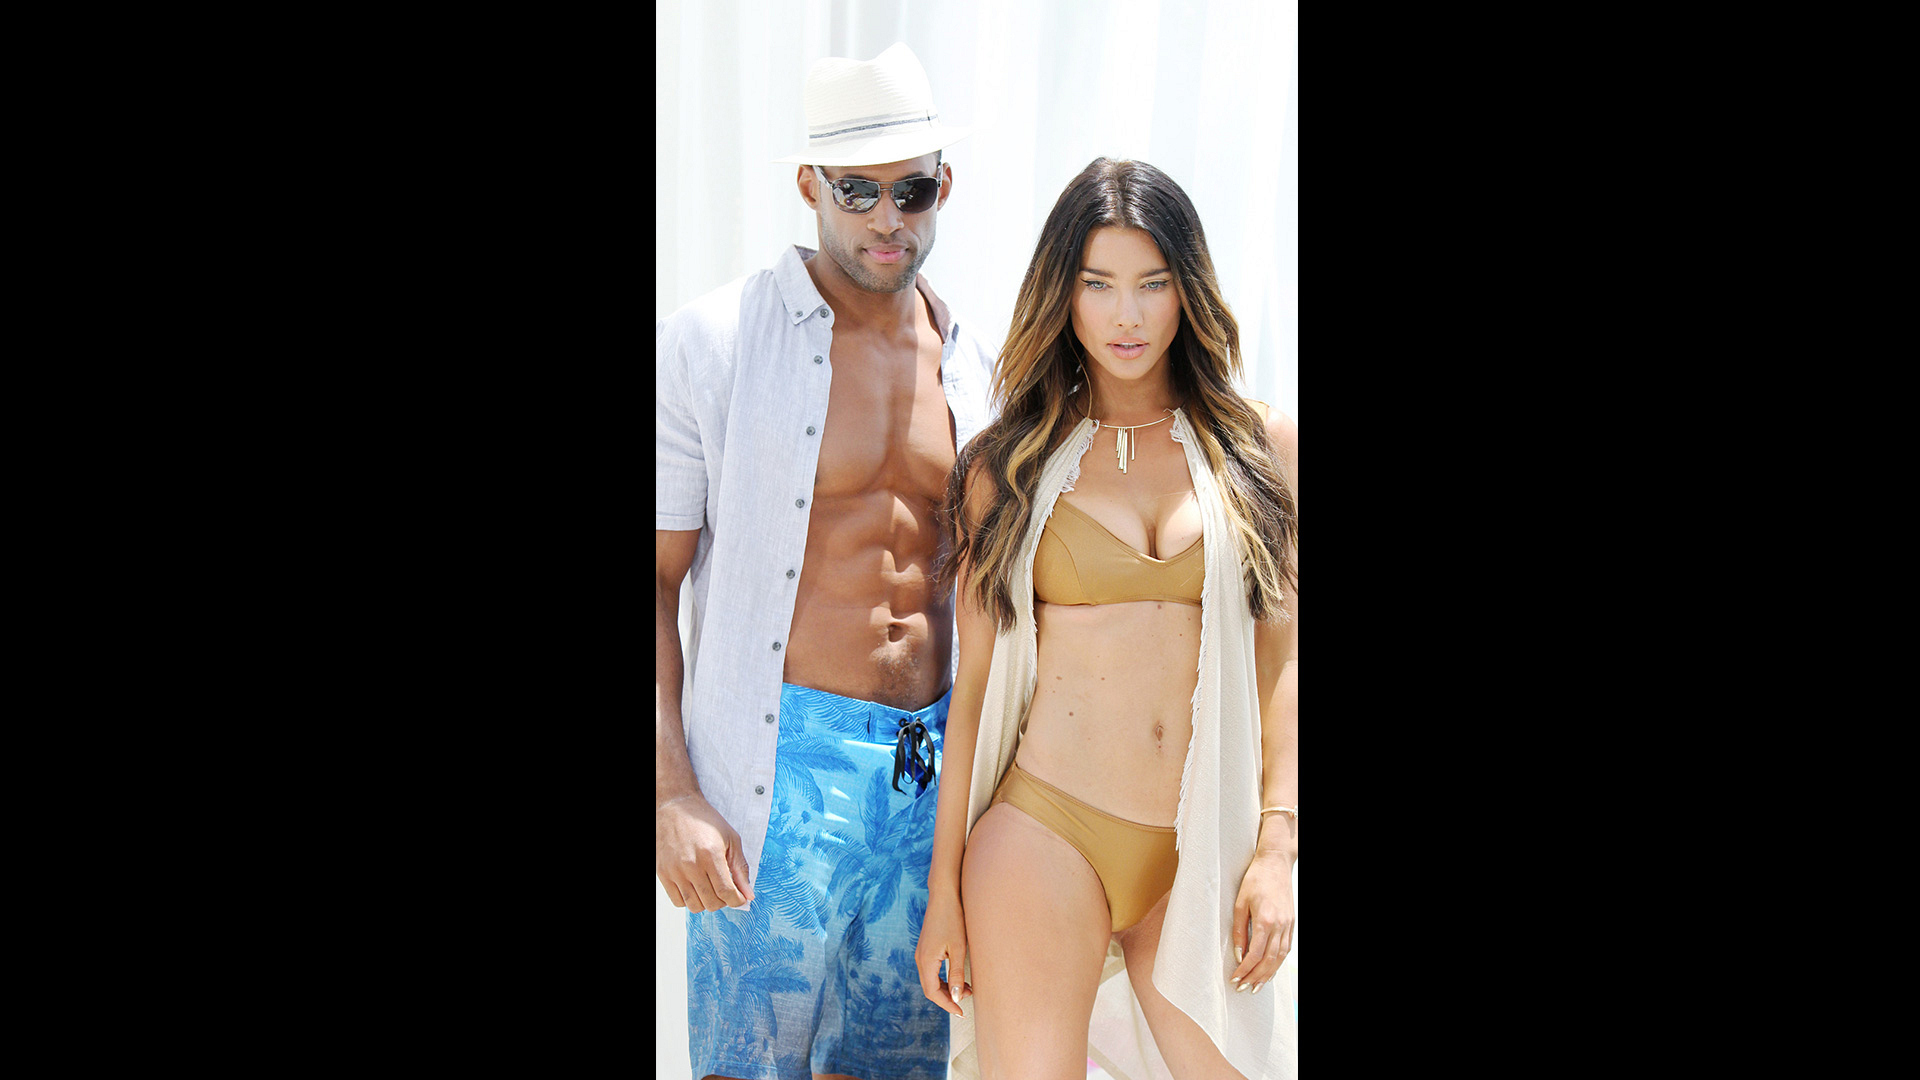 Lawrence Saint-Victor and Jacqueline MacInnes Wood strike a sizzling post.